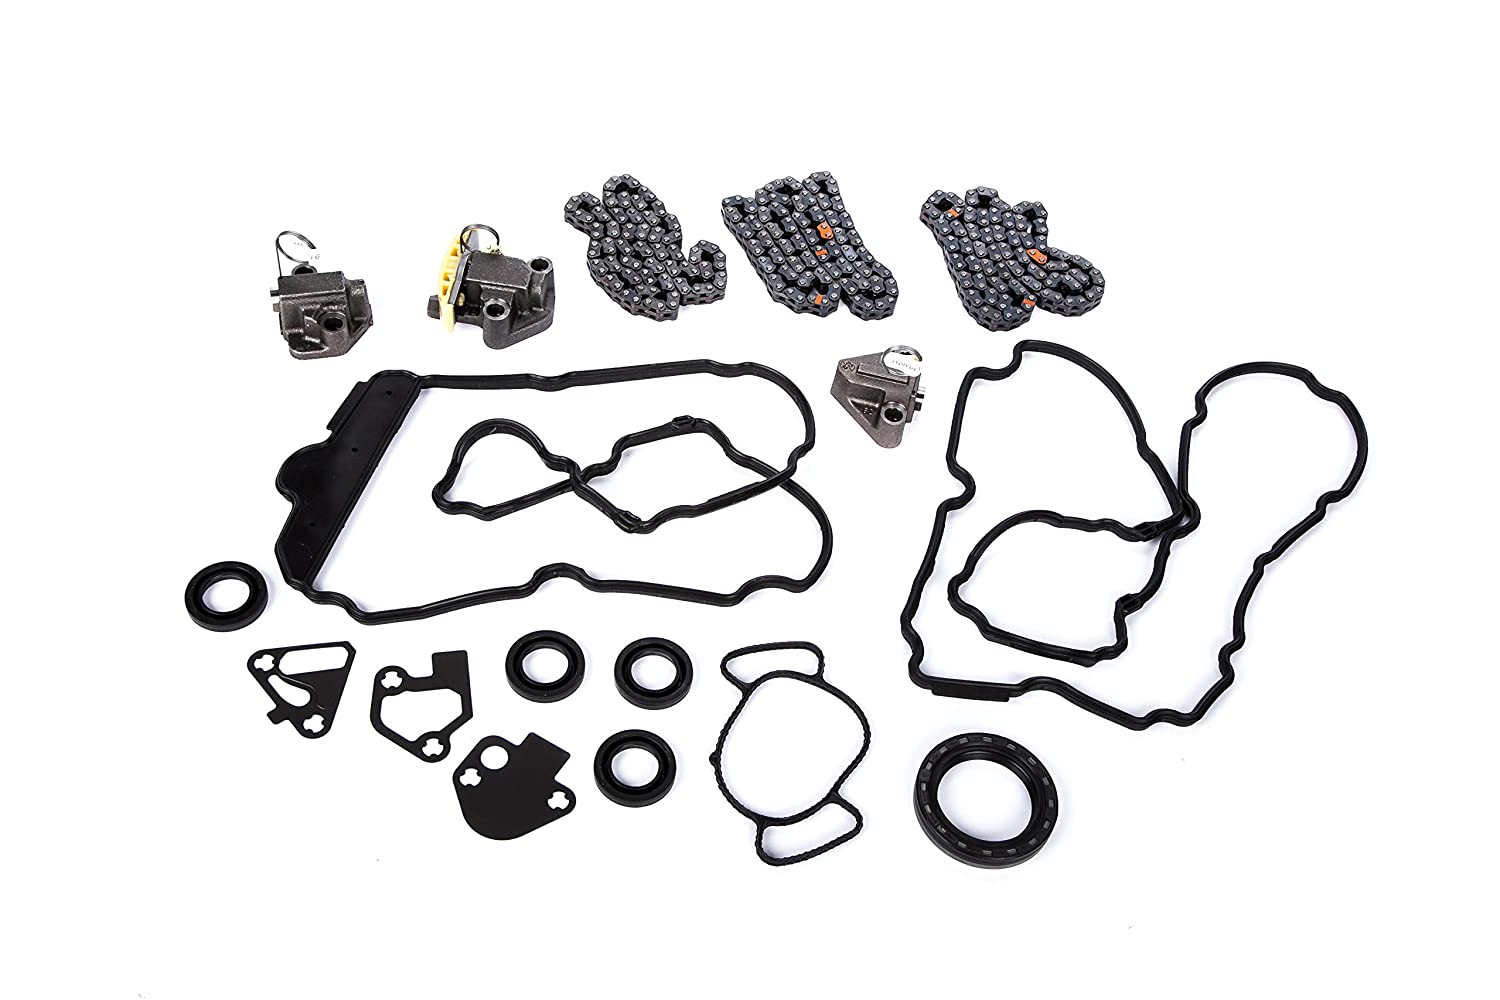 2007 Hhr Fuel Filter Location Wiring Source 2010 Chevy Silverado Oil Pressure Sensor Additionally Diagram Likewise 2004 Nissan Xterra Fuse Box Further